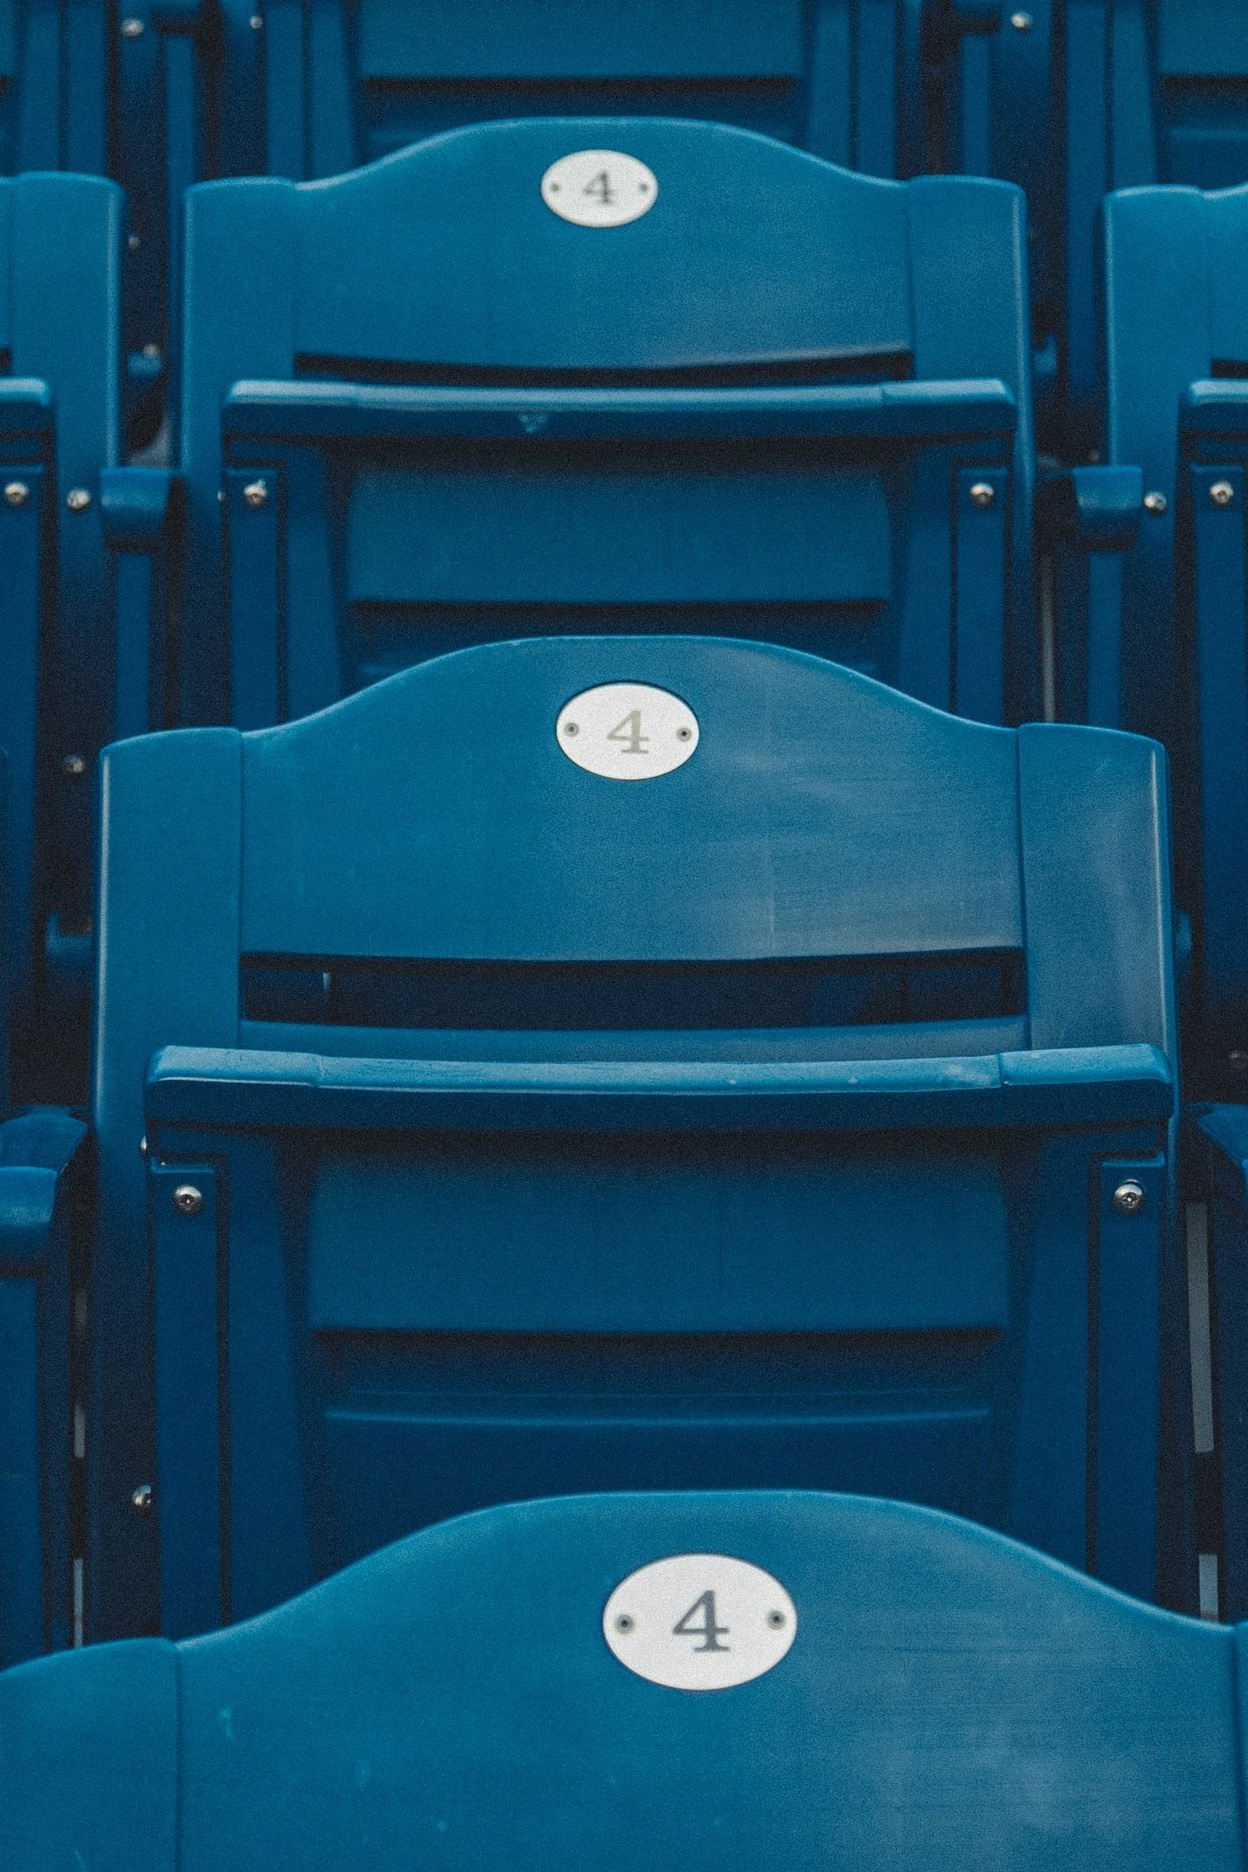 - Support your favorite team on and off the field,with our Seat Geek link